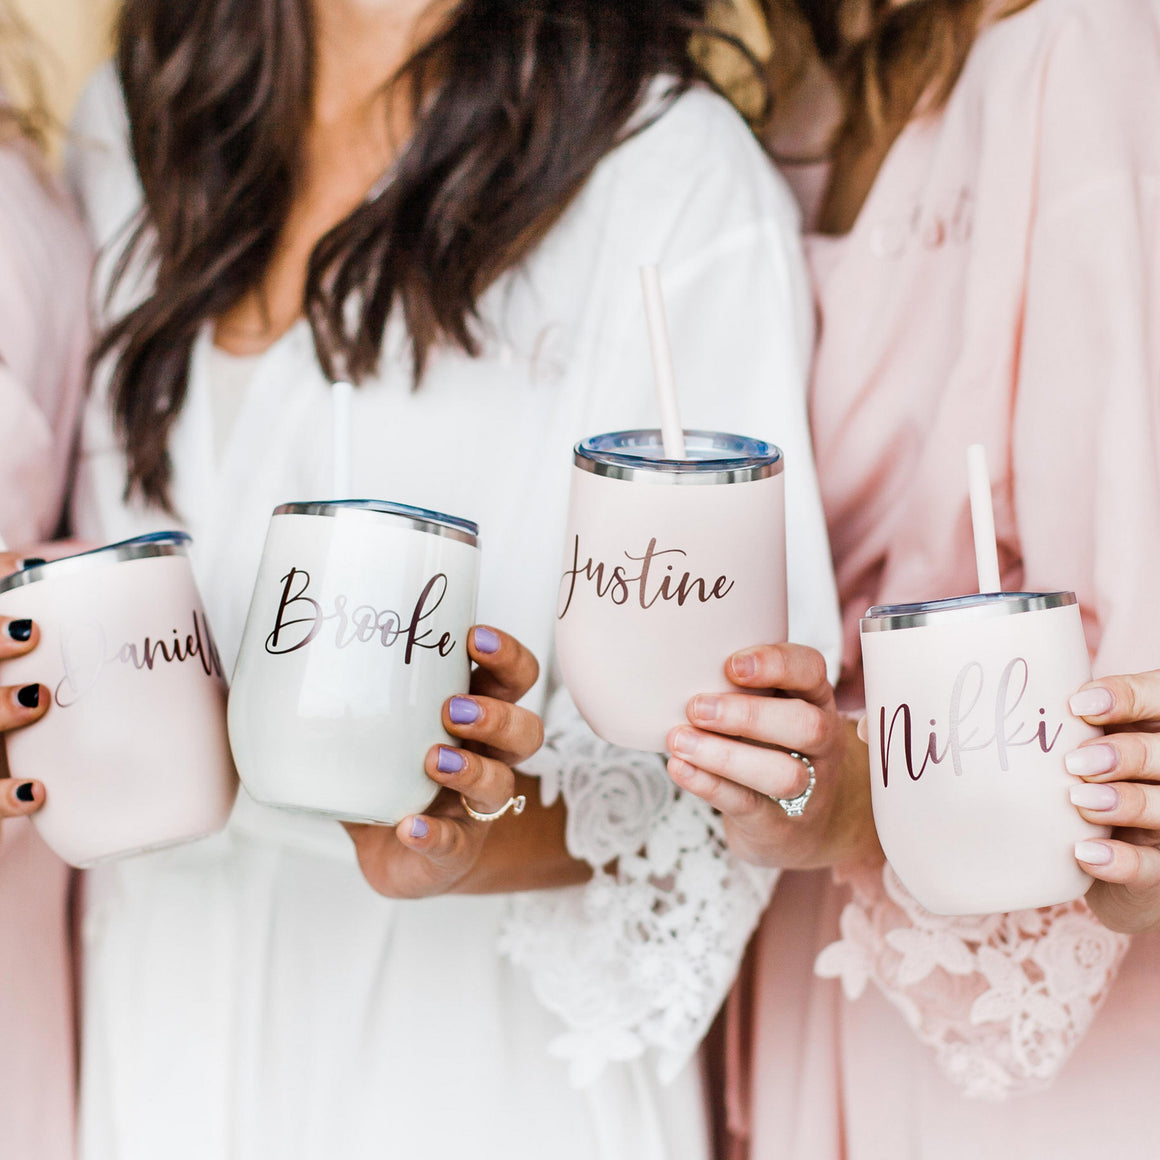 Wedding Tumbler Custom Logo or Text Tumbler Personalized WINE Tumbler Party Favors Gifts for Women Tumbler with Lid Gift Ideas